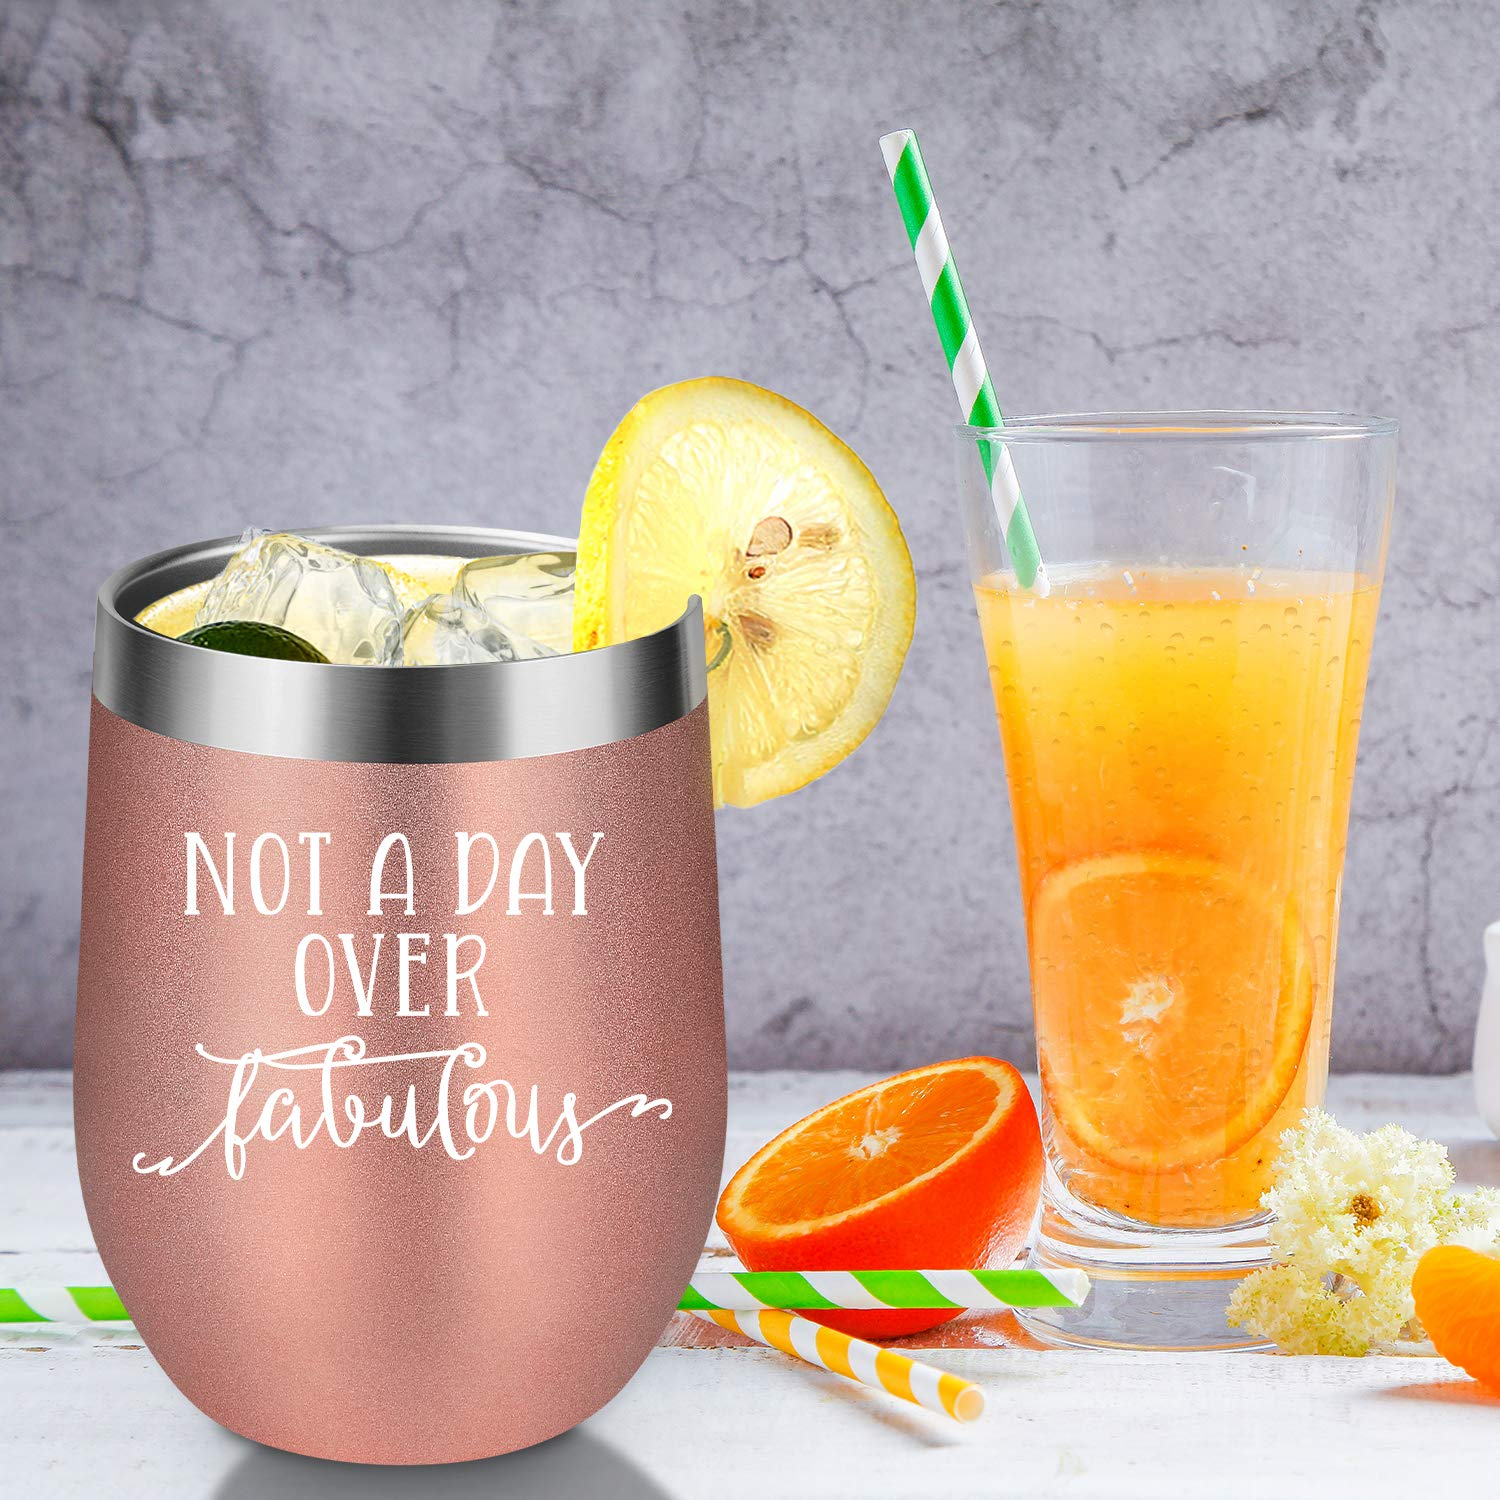 Not a Day Over Fabulous   Funny Birthday Wine Gifts Ideas for Women, BFF, Best Friends, Coworkers, Her, Wife, Mom, Daughter, Sister, Aunt   Coolife 12oz Stemless Insulated Wine Tumbler with Lid by Coolife (Image #4)